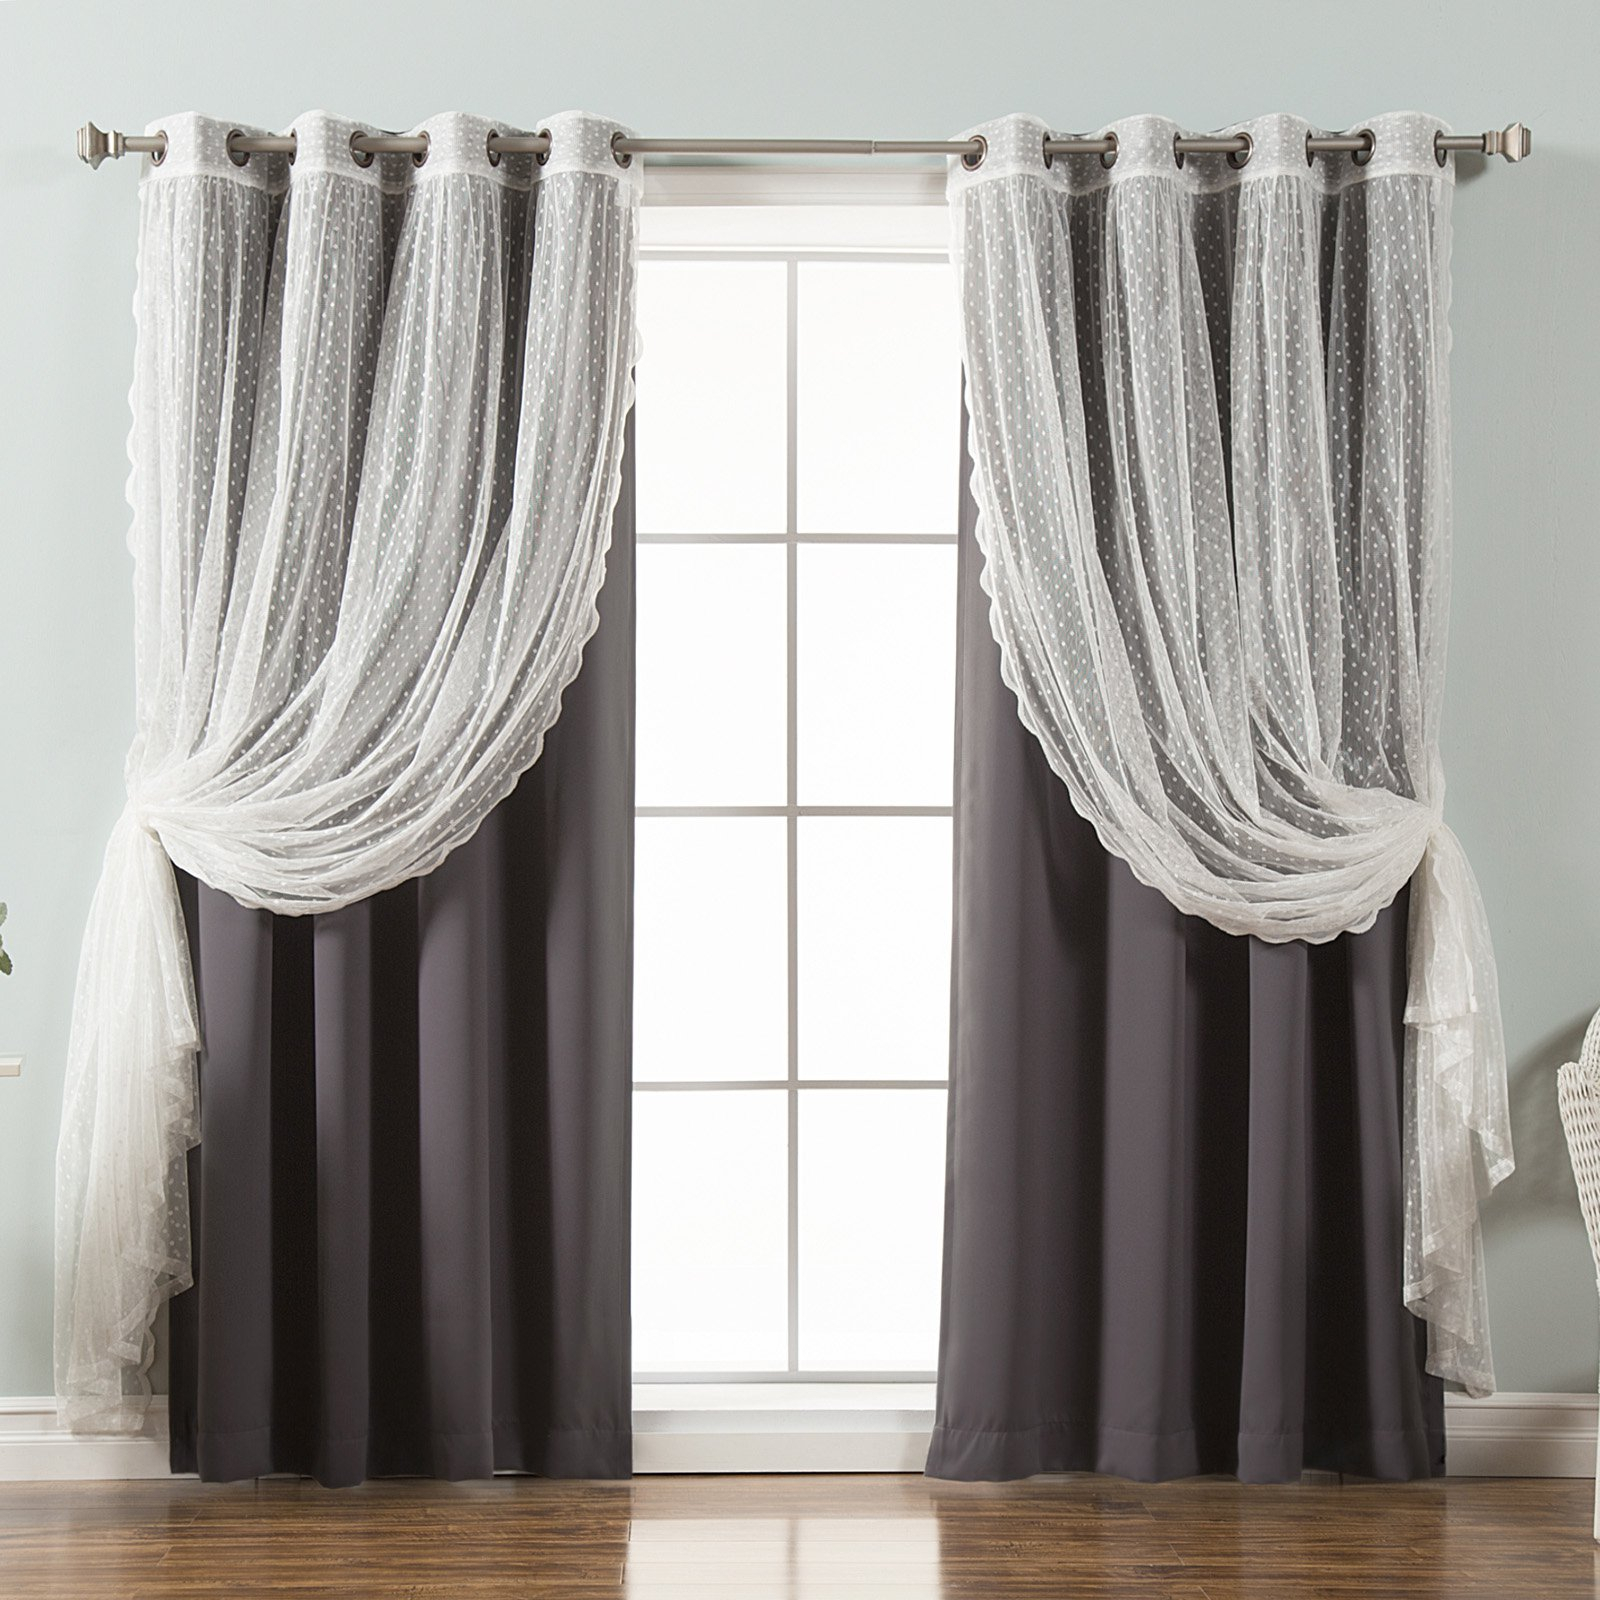 Best Home Fashion Dotted Tulle Blackout Mix & Match Curtain Within Mix And Match Blackout Blackout Curtains Panel Sets (View 8 of 20)